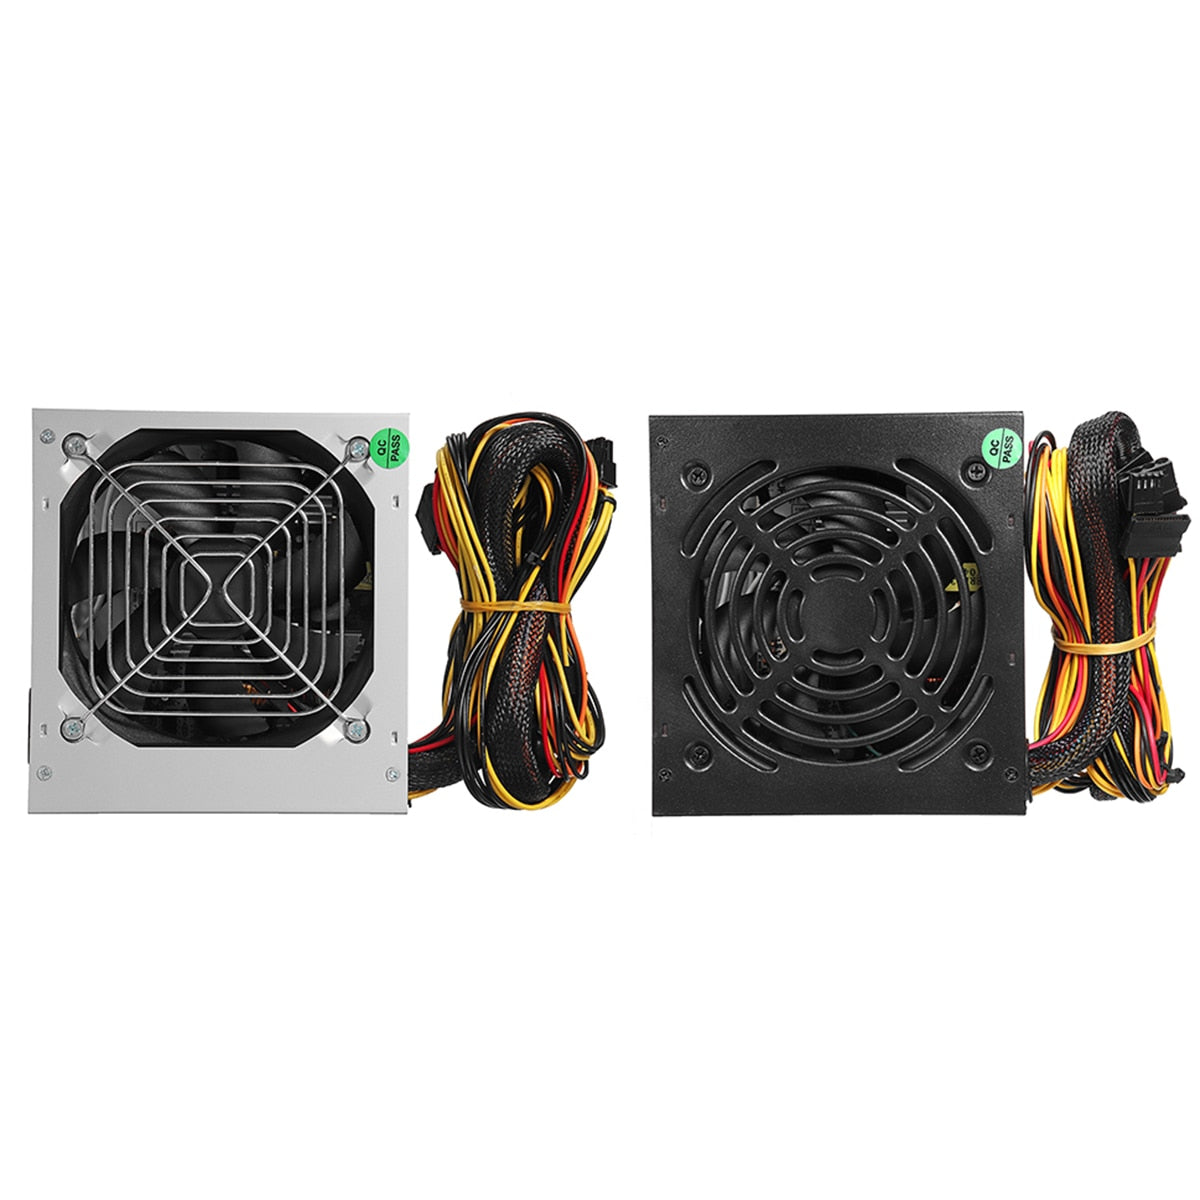 Max 1000W ATX Power Supply Quiet Fan For Intel AMD PC PSU PC Computer Miner